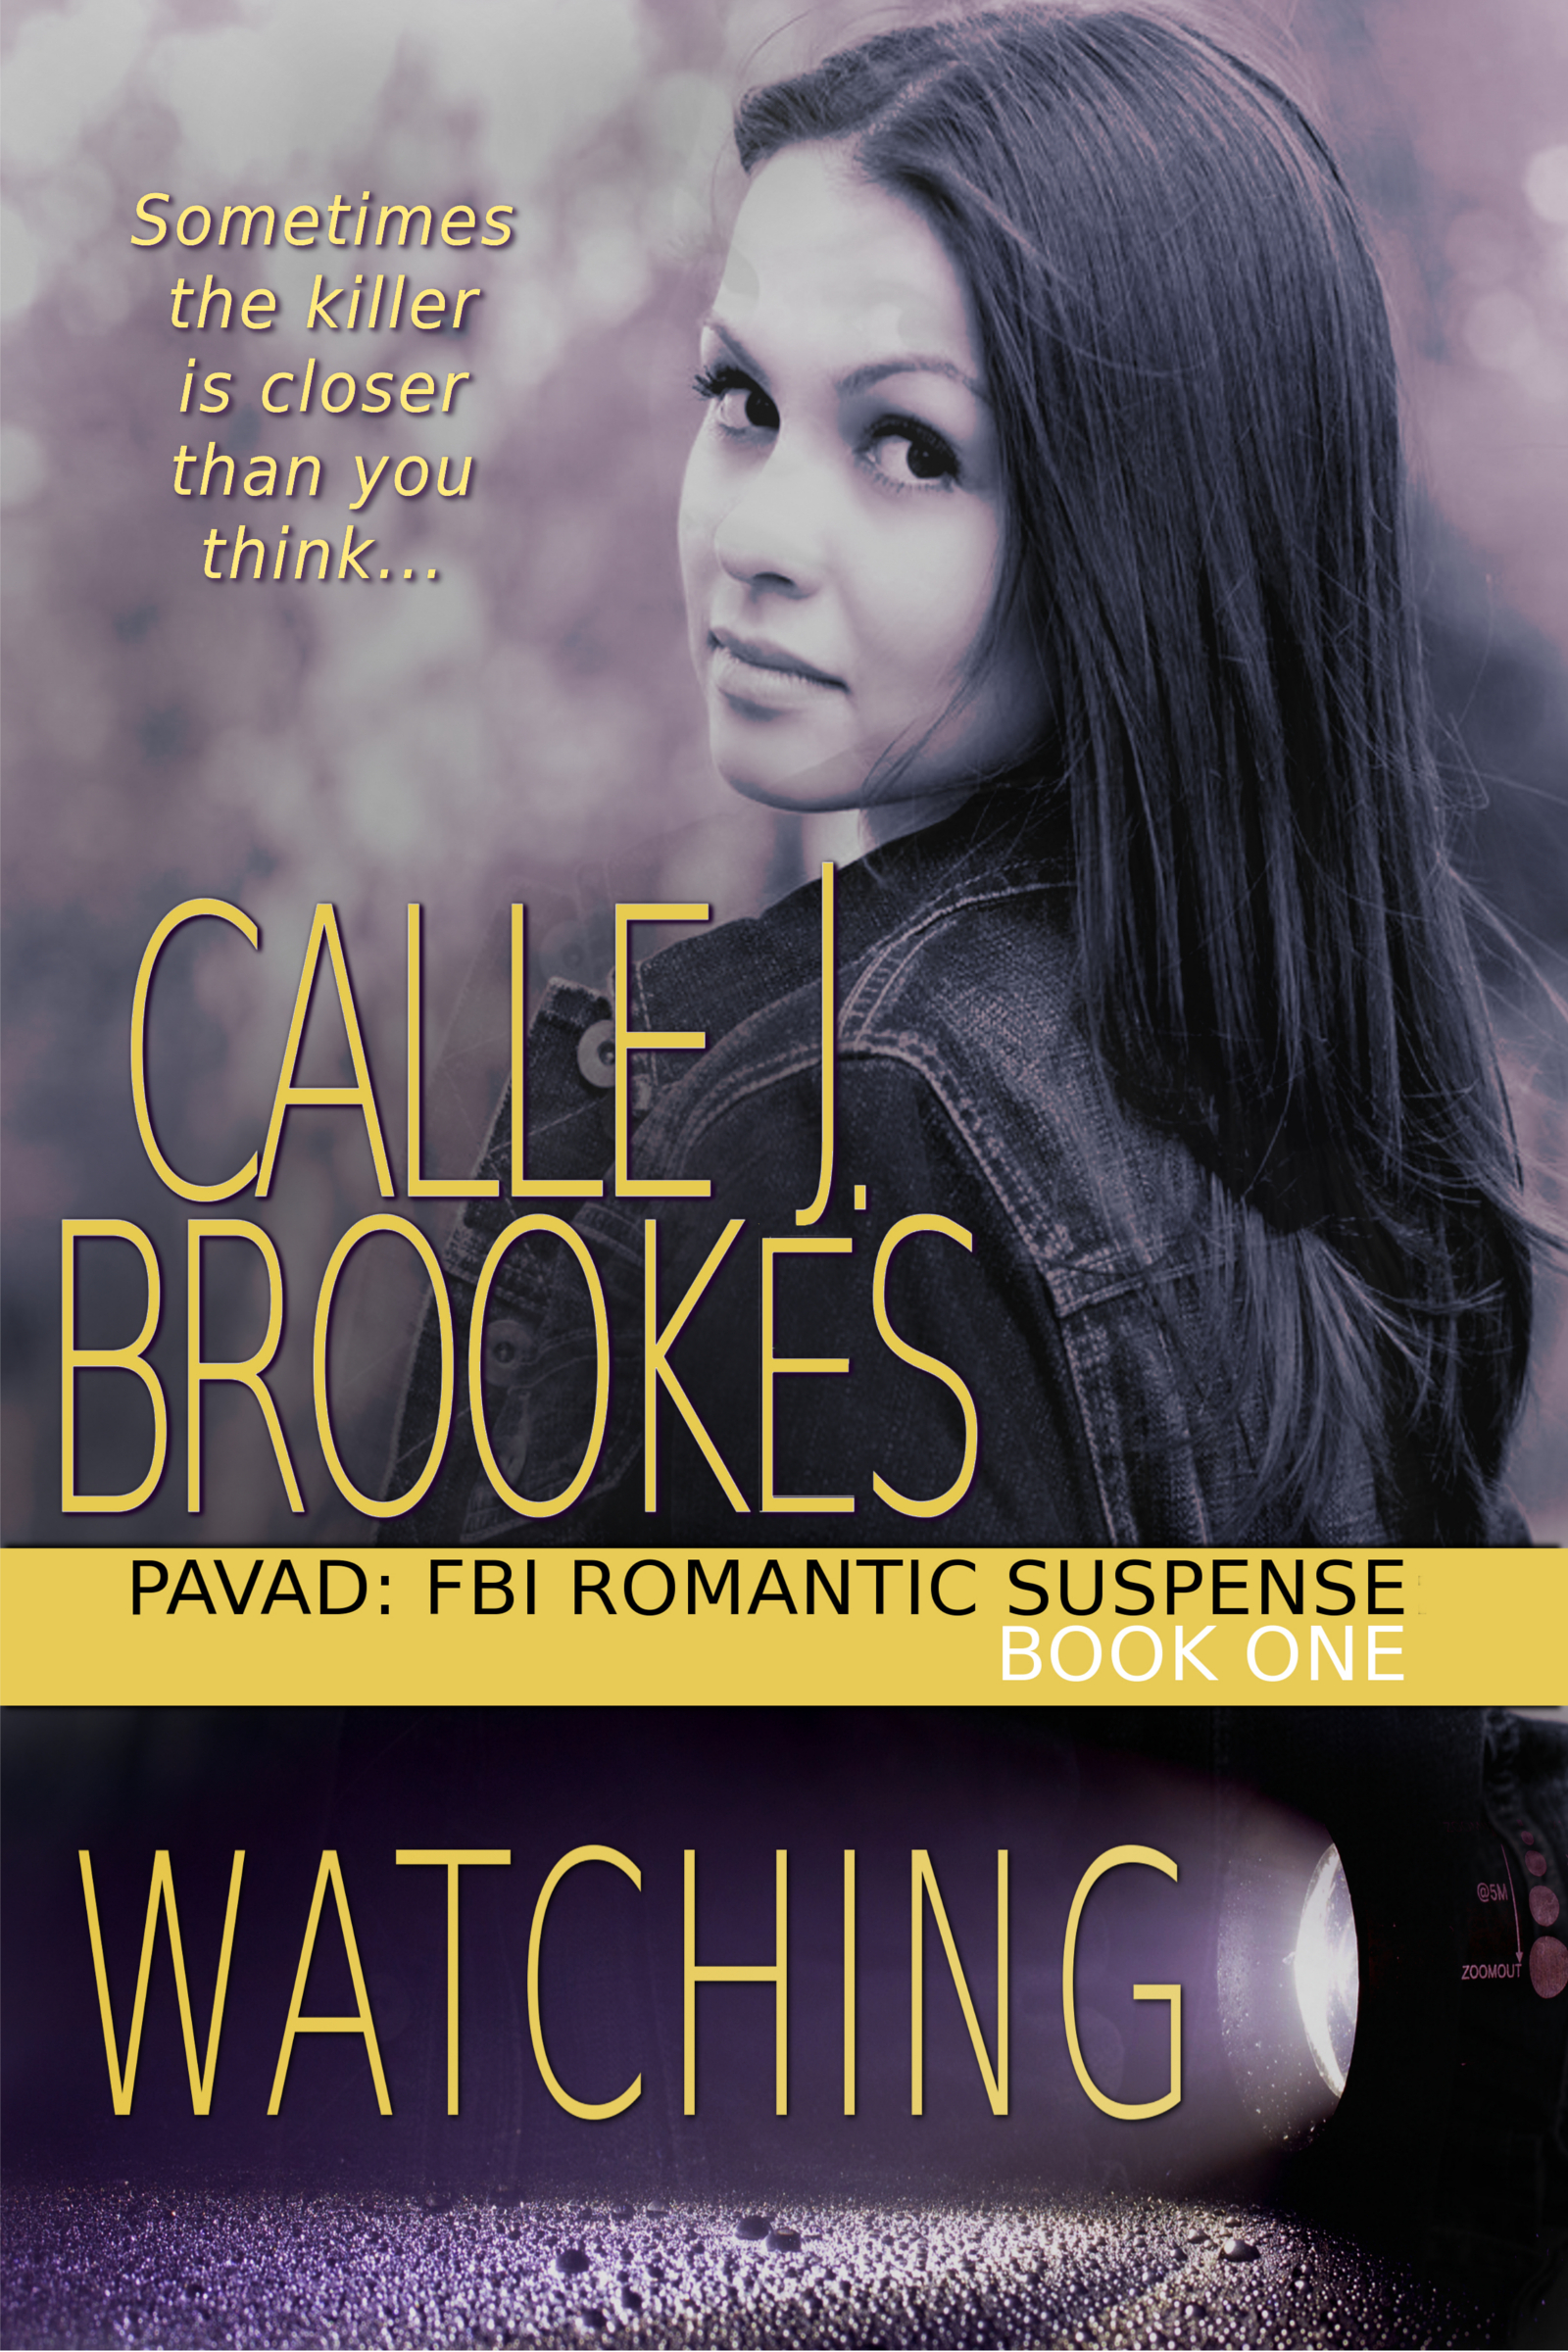 Watching: PAVAD: FBI Romantic Suspense, 1 (sst-cclxxxii)